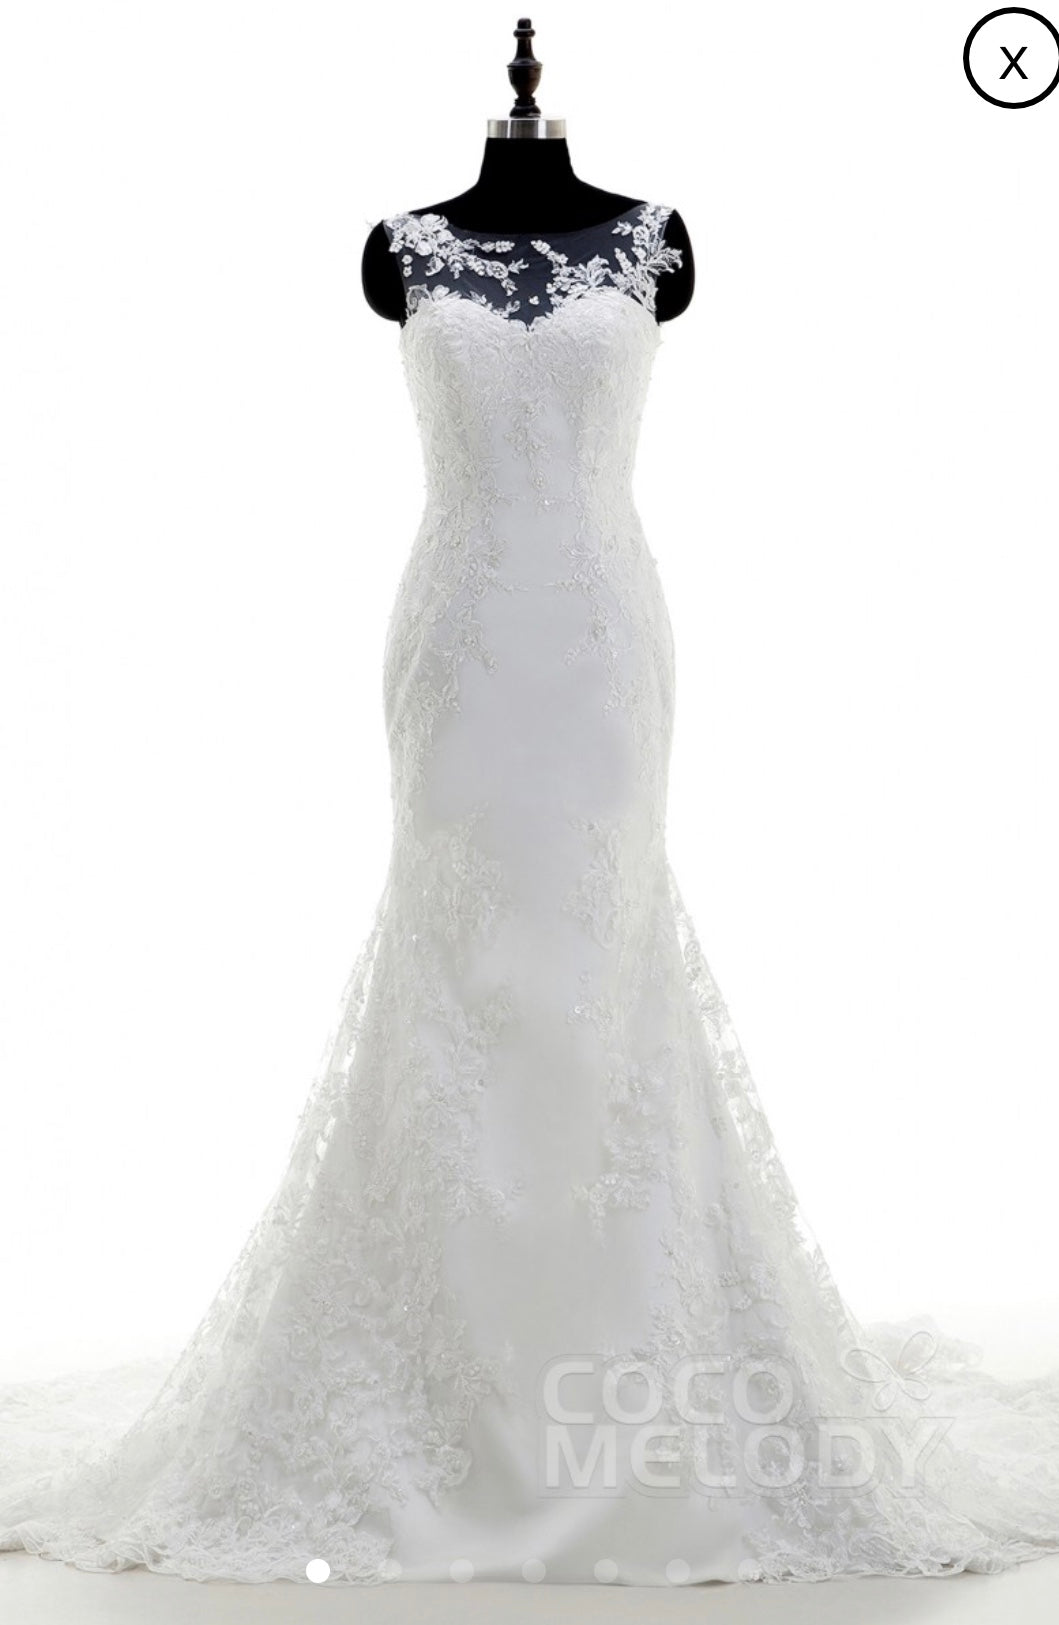 Custom 'Cocomelody' size 12 new wedding dress front view on mannequin